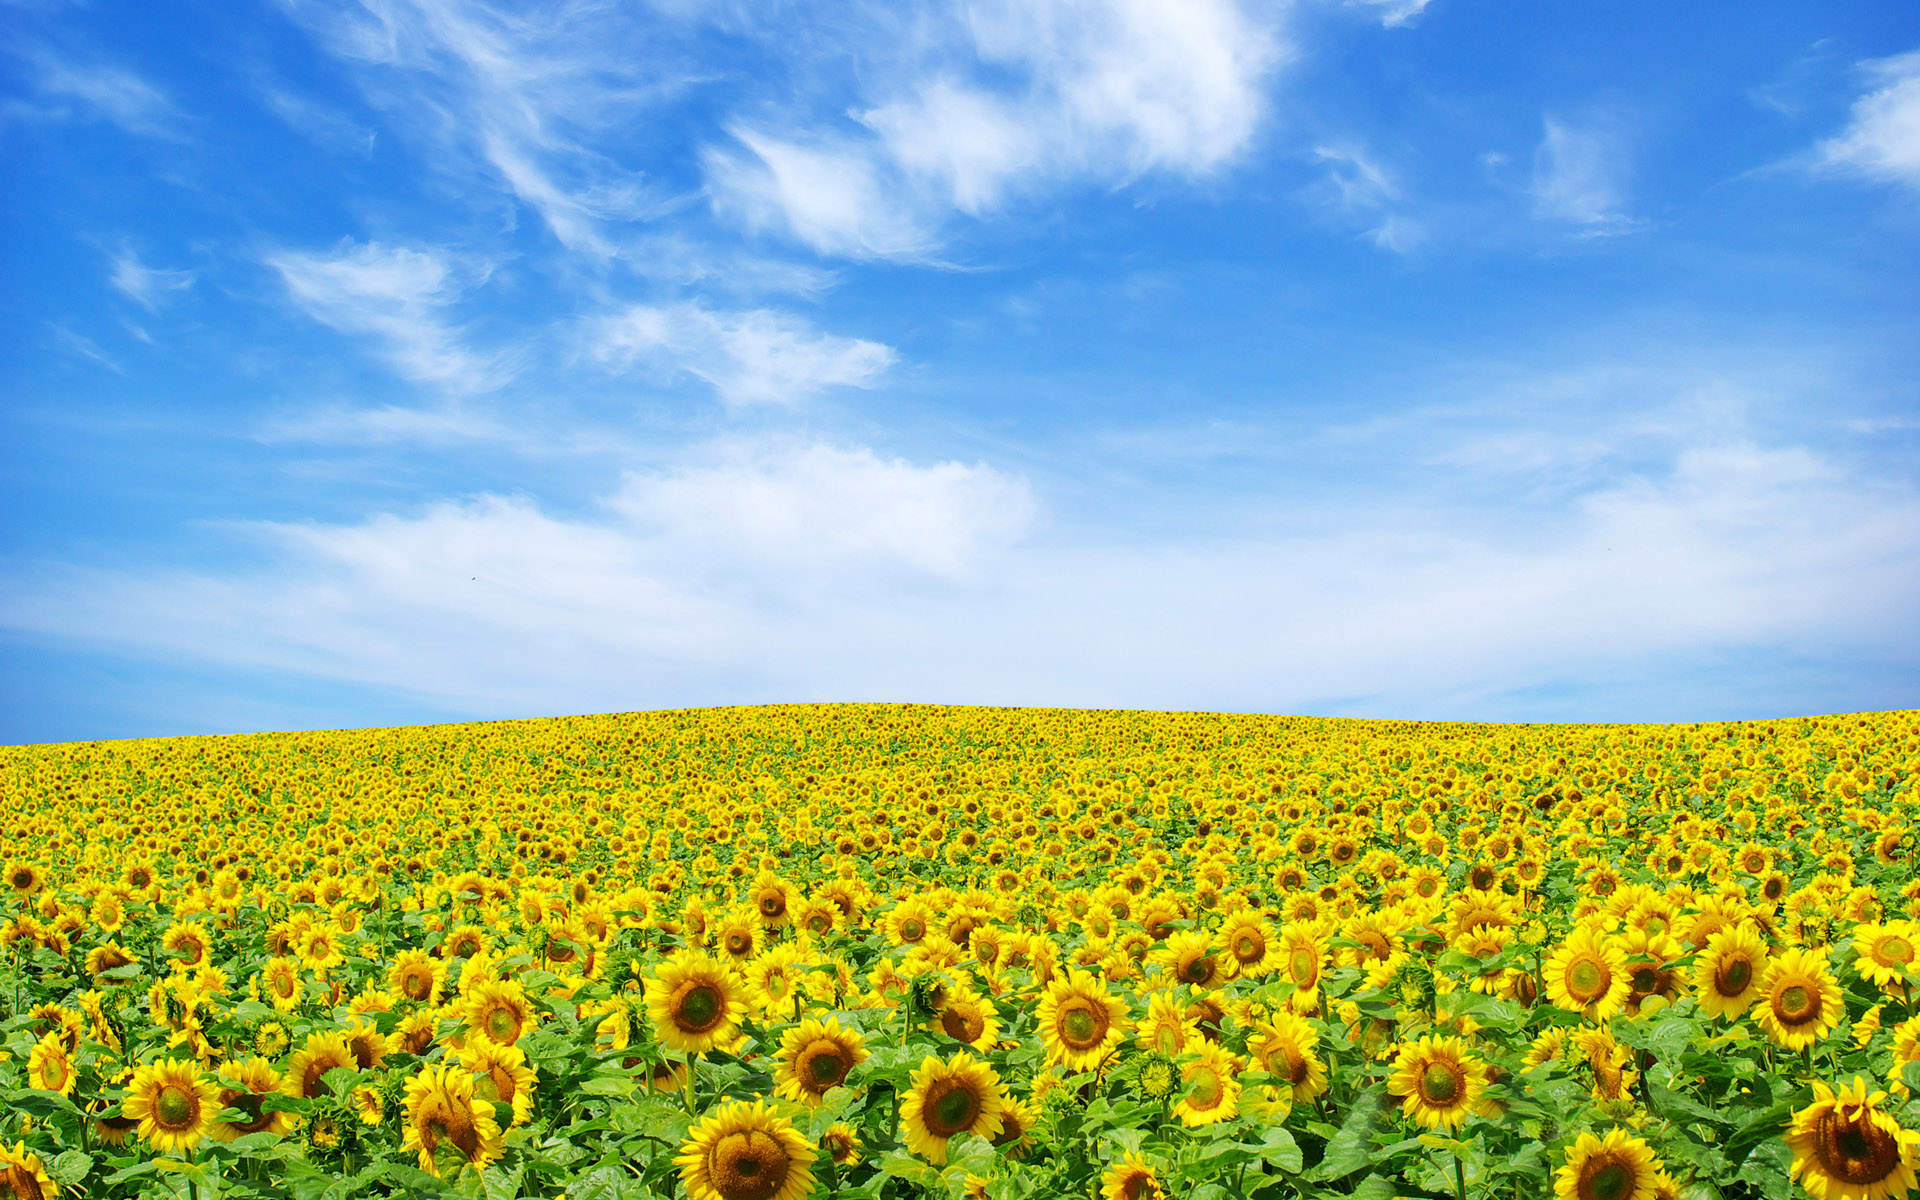 Sunflower Landscape 852.02 Kb